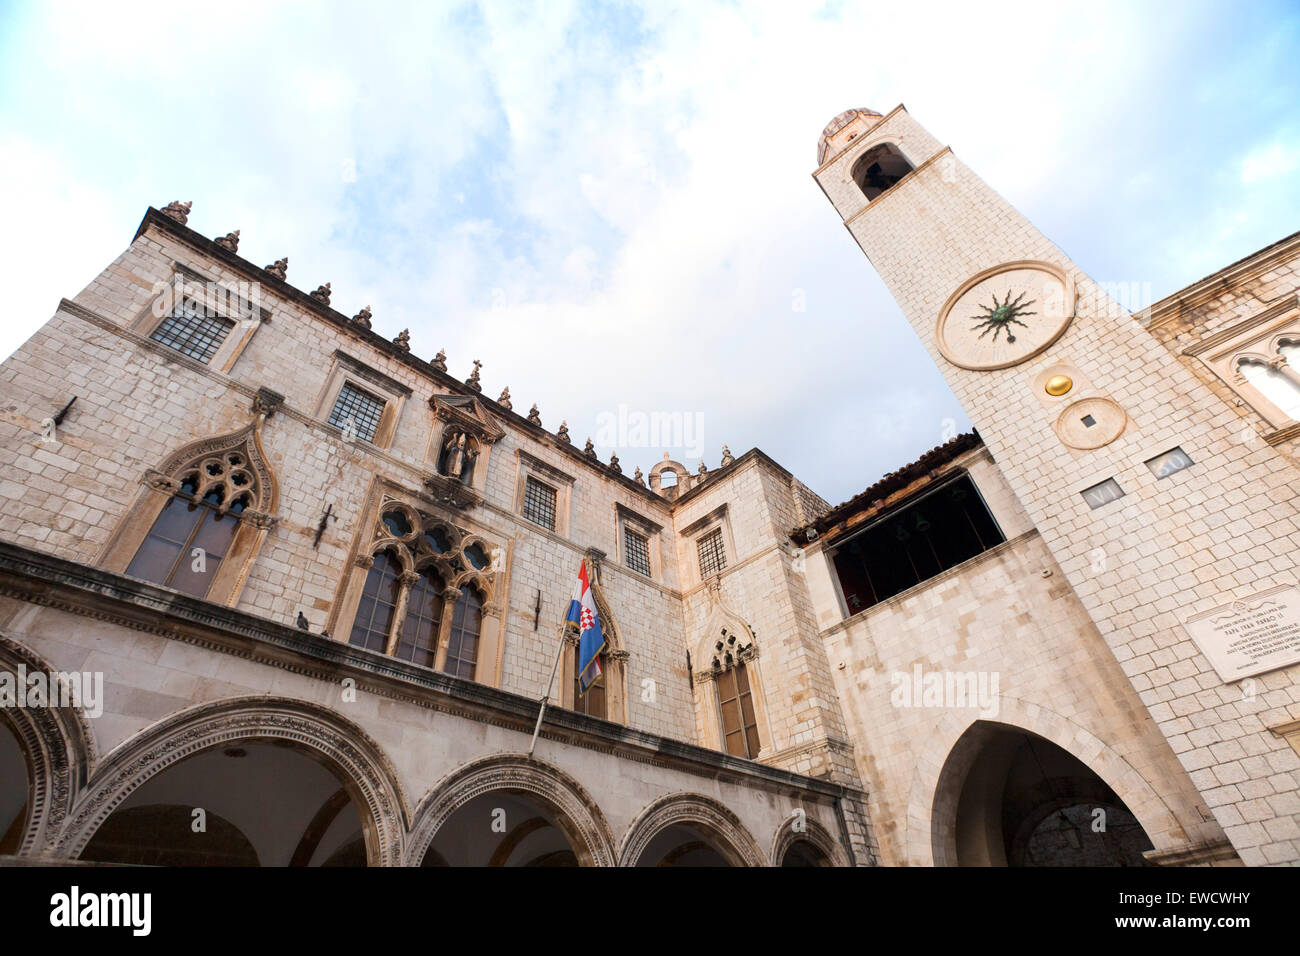 Cathedral in Walled city of Dubrovnic in Croatia Stock Photo